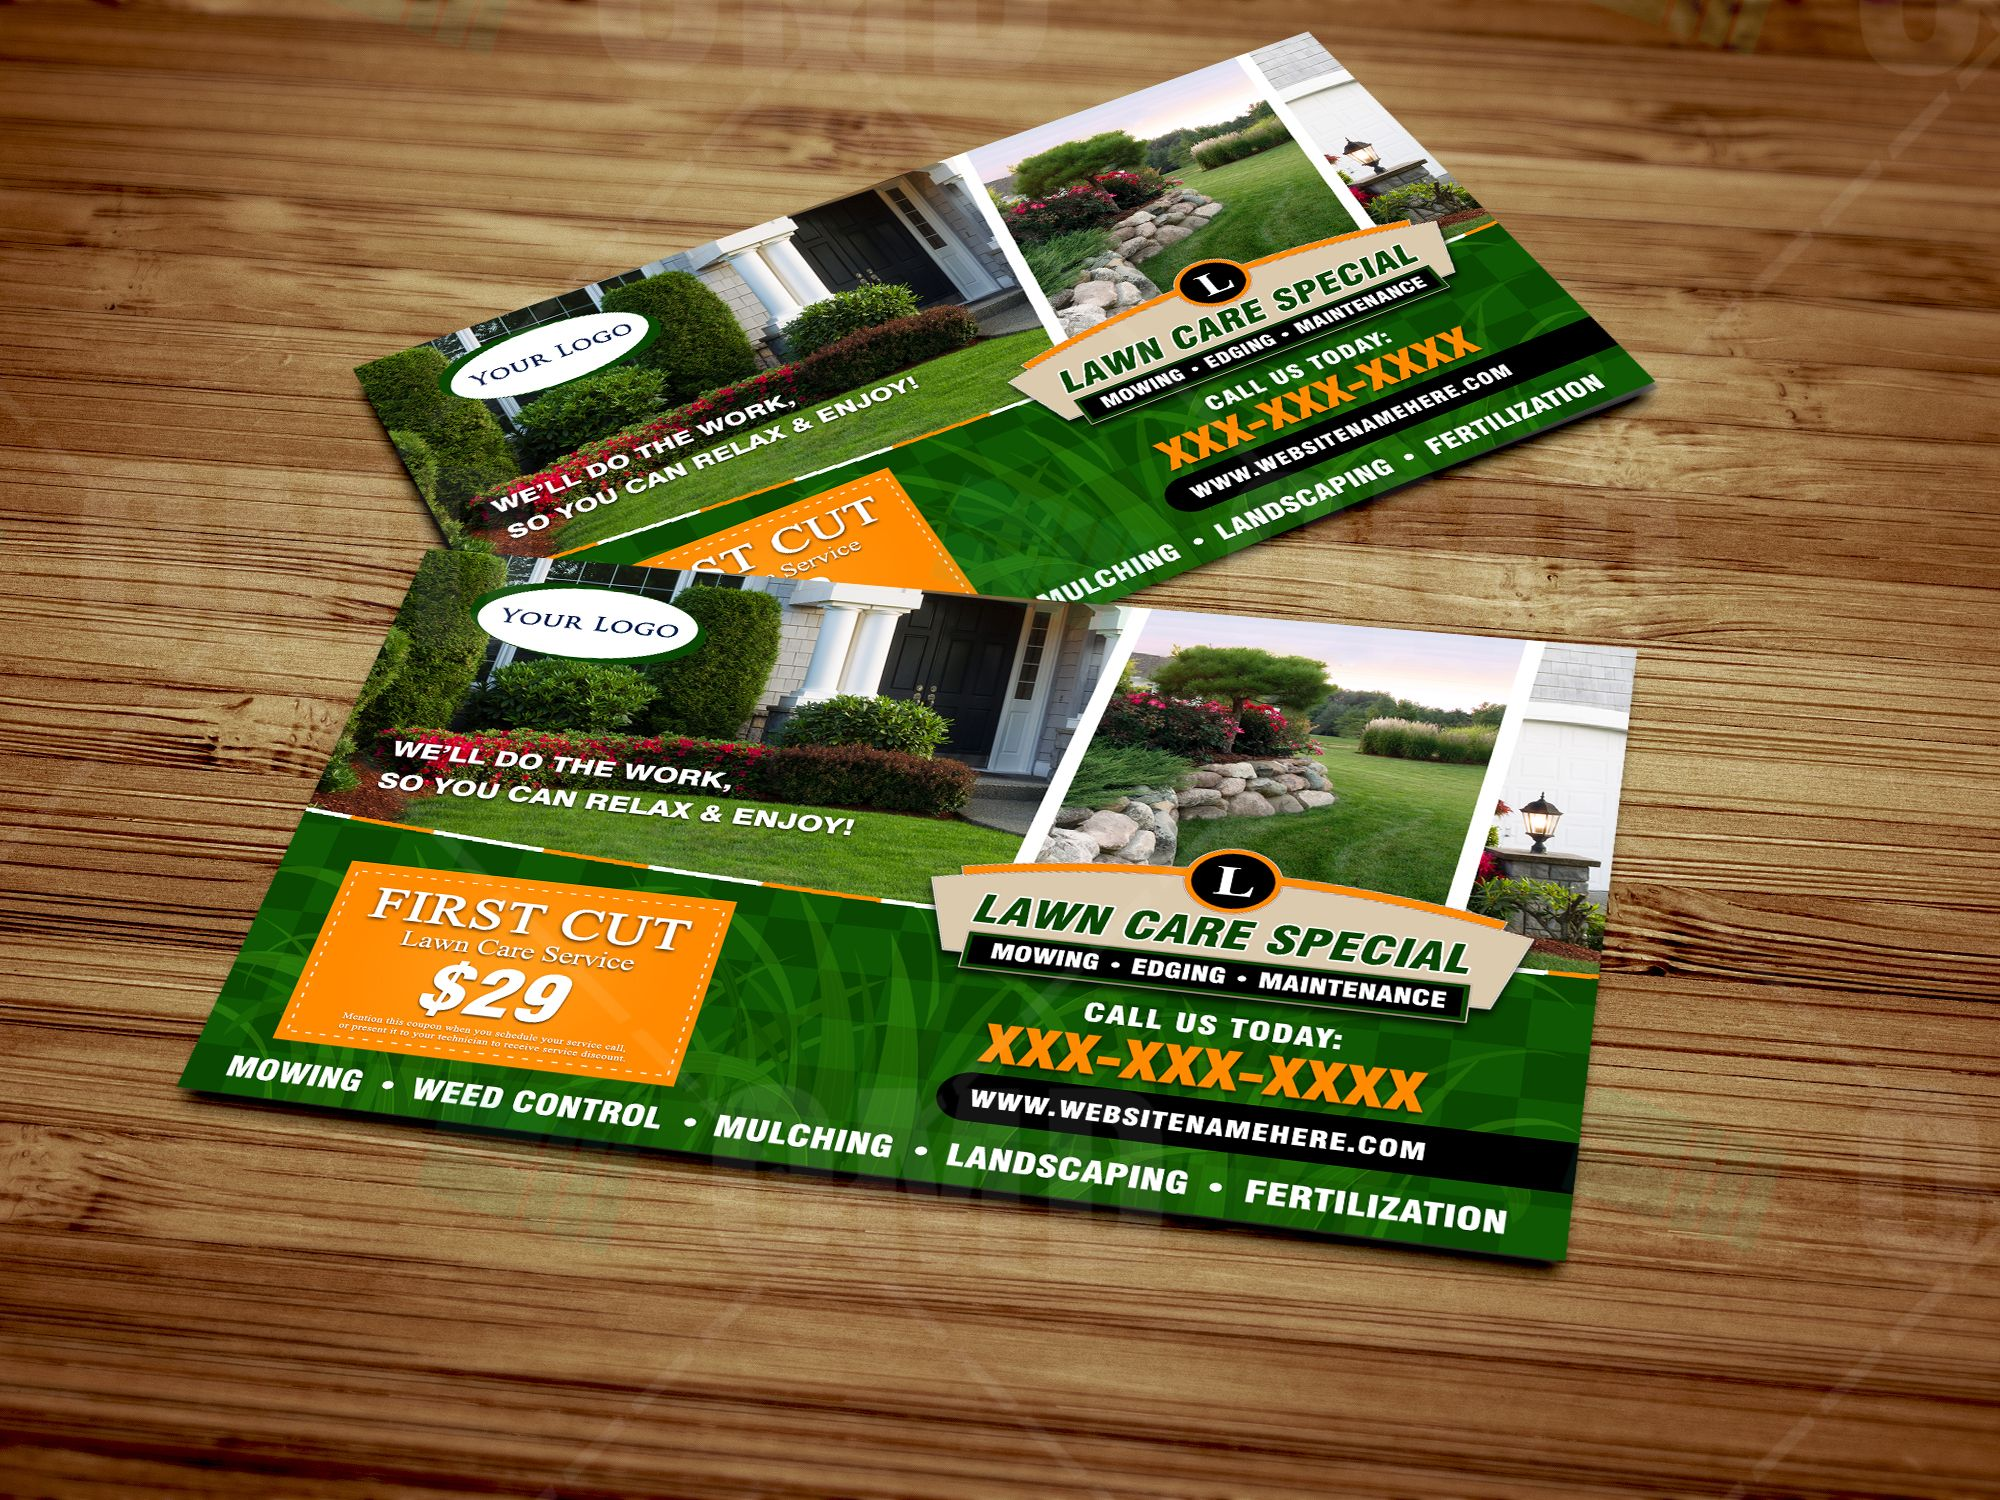 best images about lawn care marketing 17 best images about lawn care marketing landscaping product website and marketing flyers